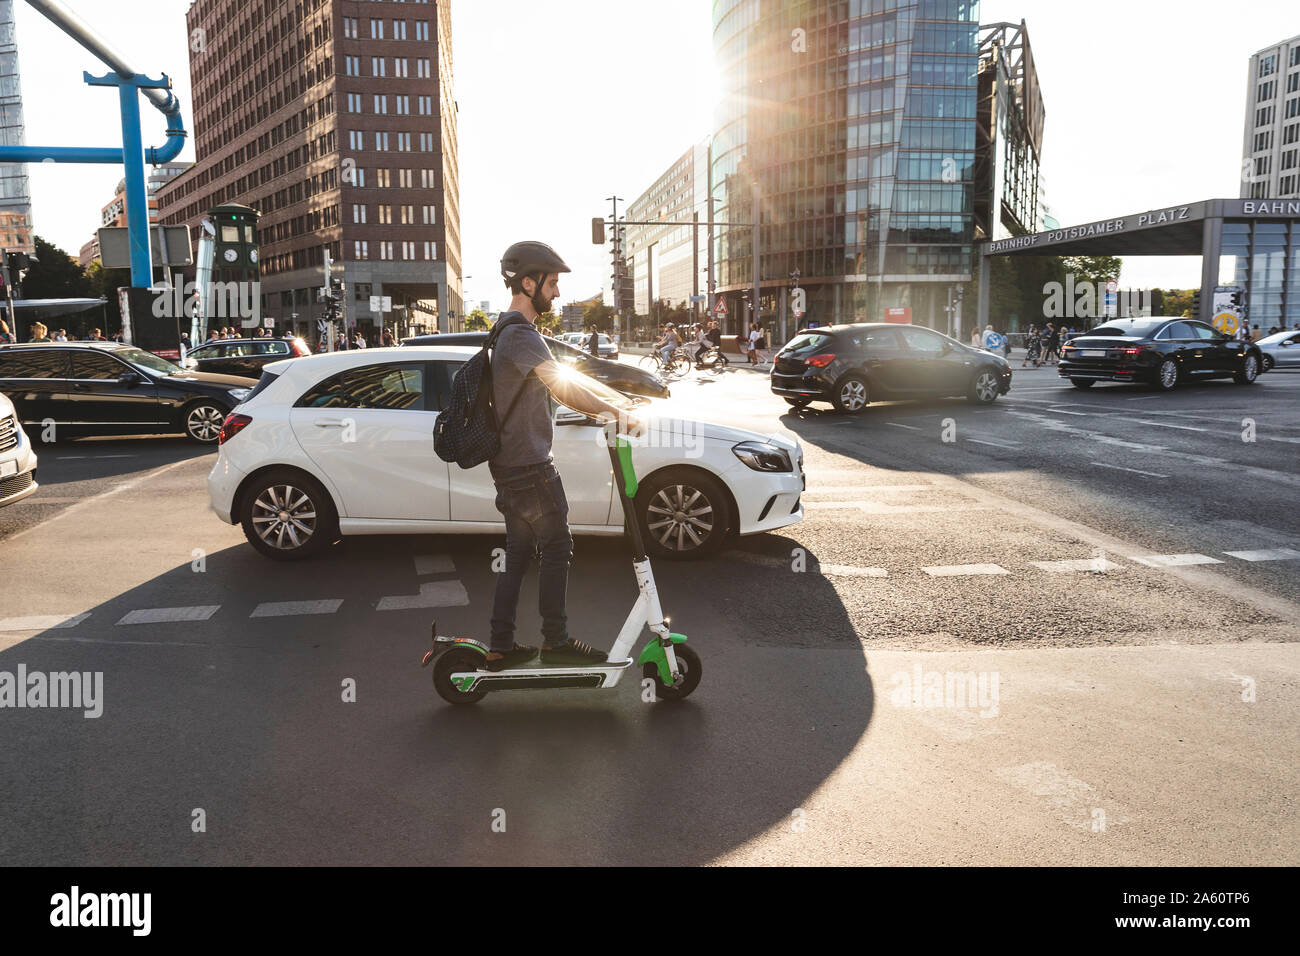 Man using e-scooter in Berlin, Germany Stock Photo